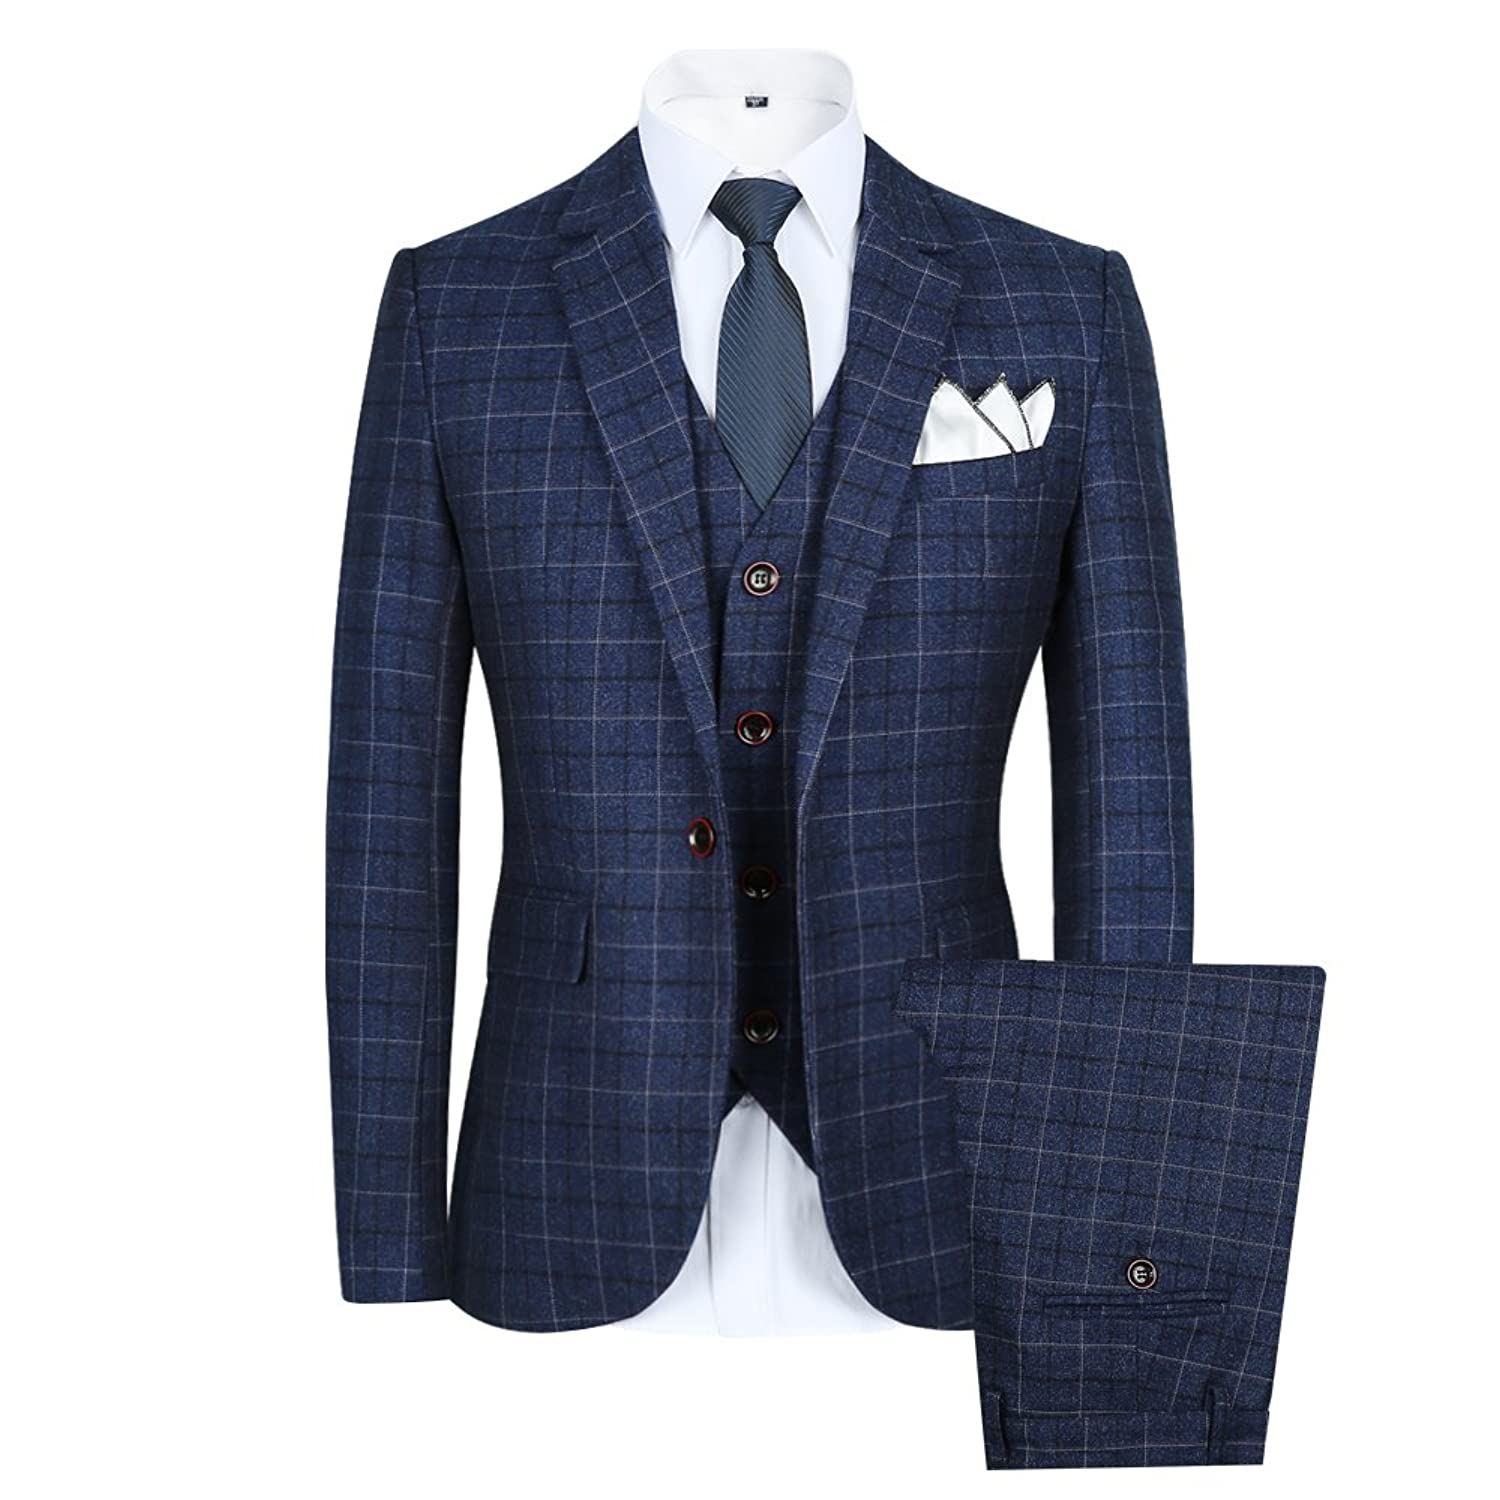 1920s Fashion for Men CCXO Men's Slim Plaid Modern Fit One Button 3-Piece Suit Blazer Dress Suit Jacket Tux Vest & Trousers $79.99 AT vintagedancer.com